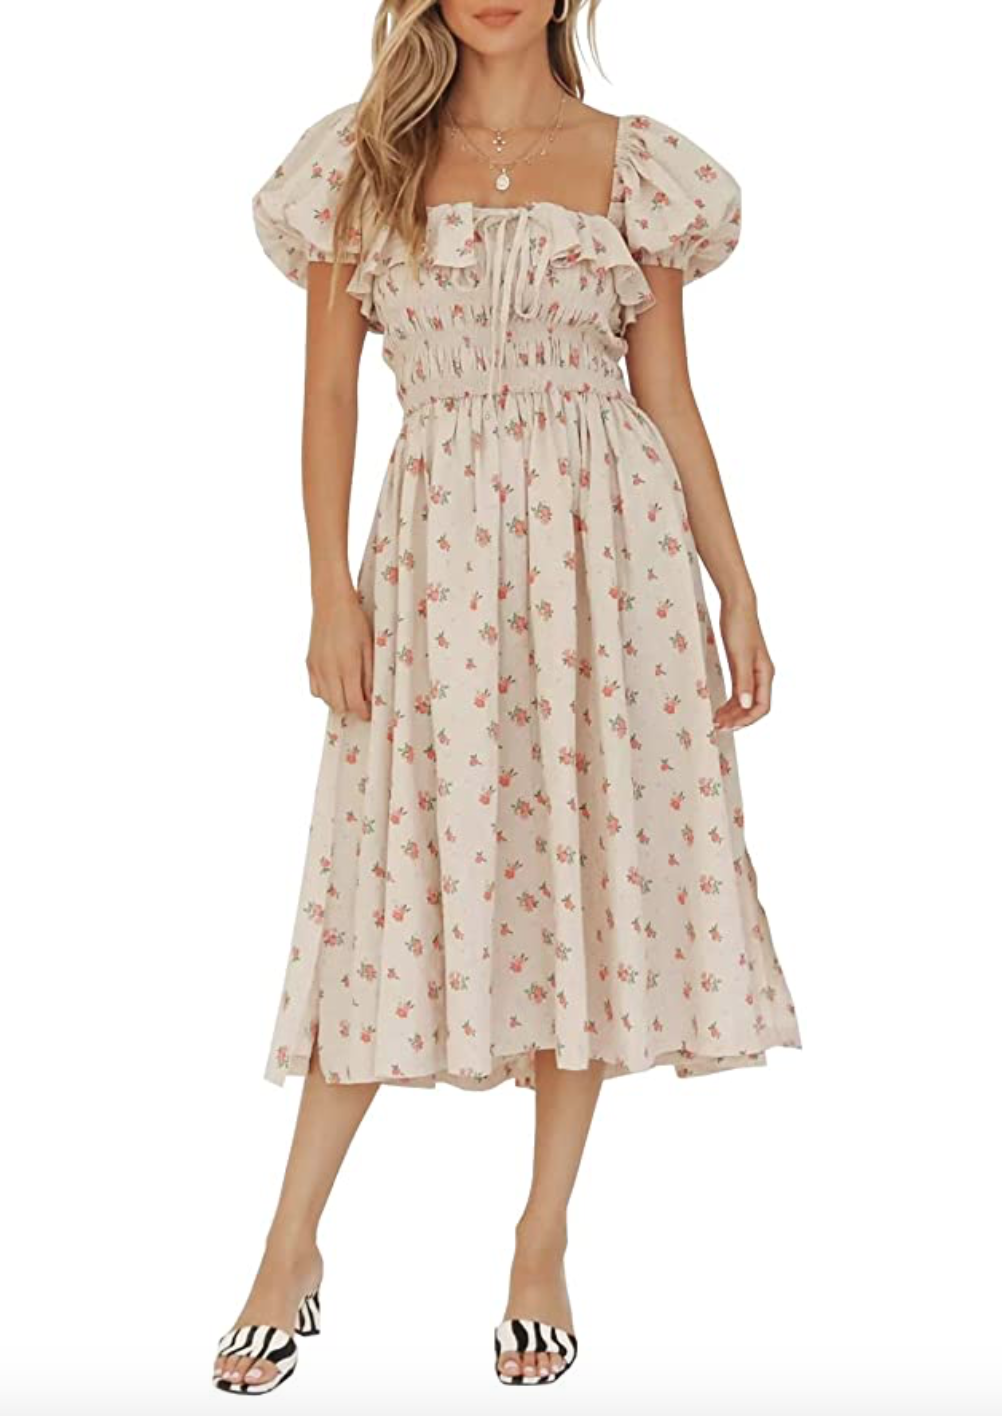 R.Vivimos Womens Summer Floral Print Puff Sleeves Vintage Ruffles Midi Dress